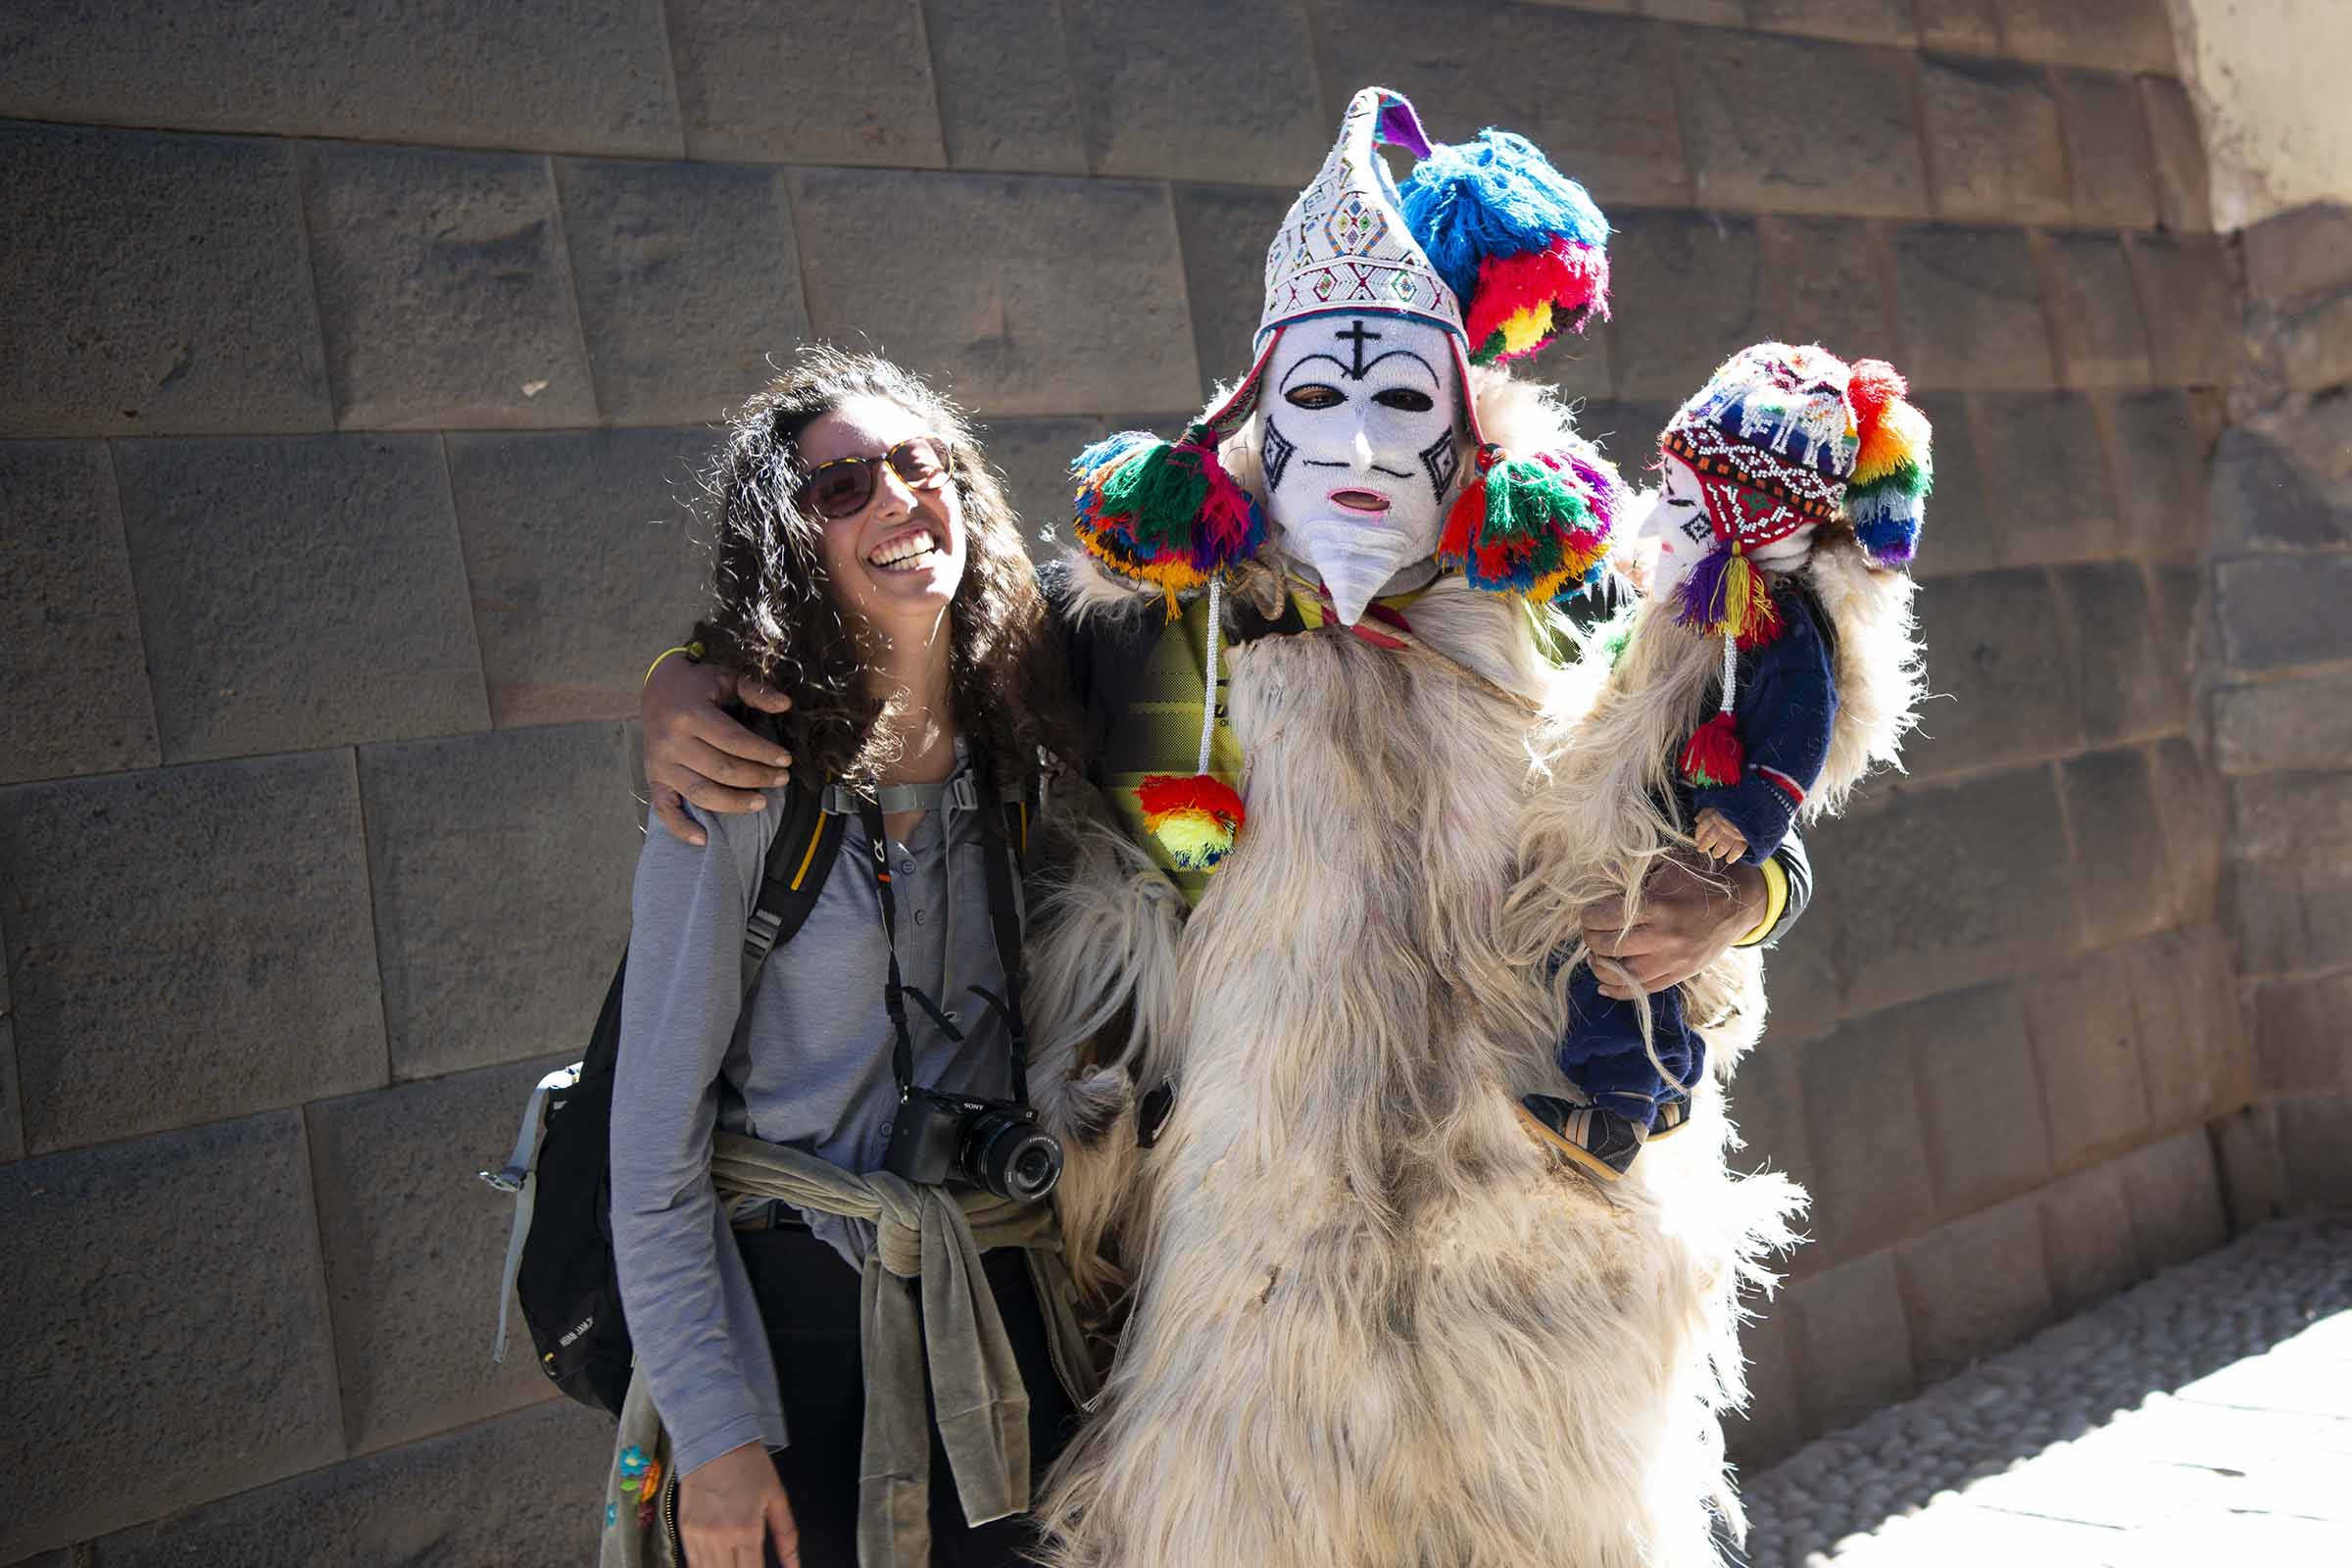 jimmy-nelson-foundation-peru-quechua-behind-the-scenes-gallery-6